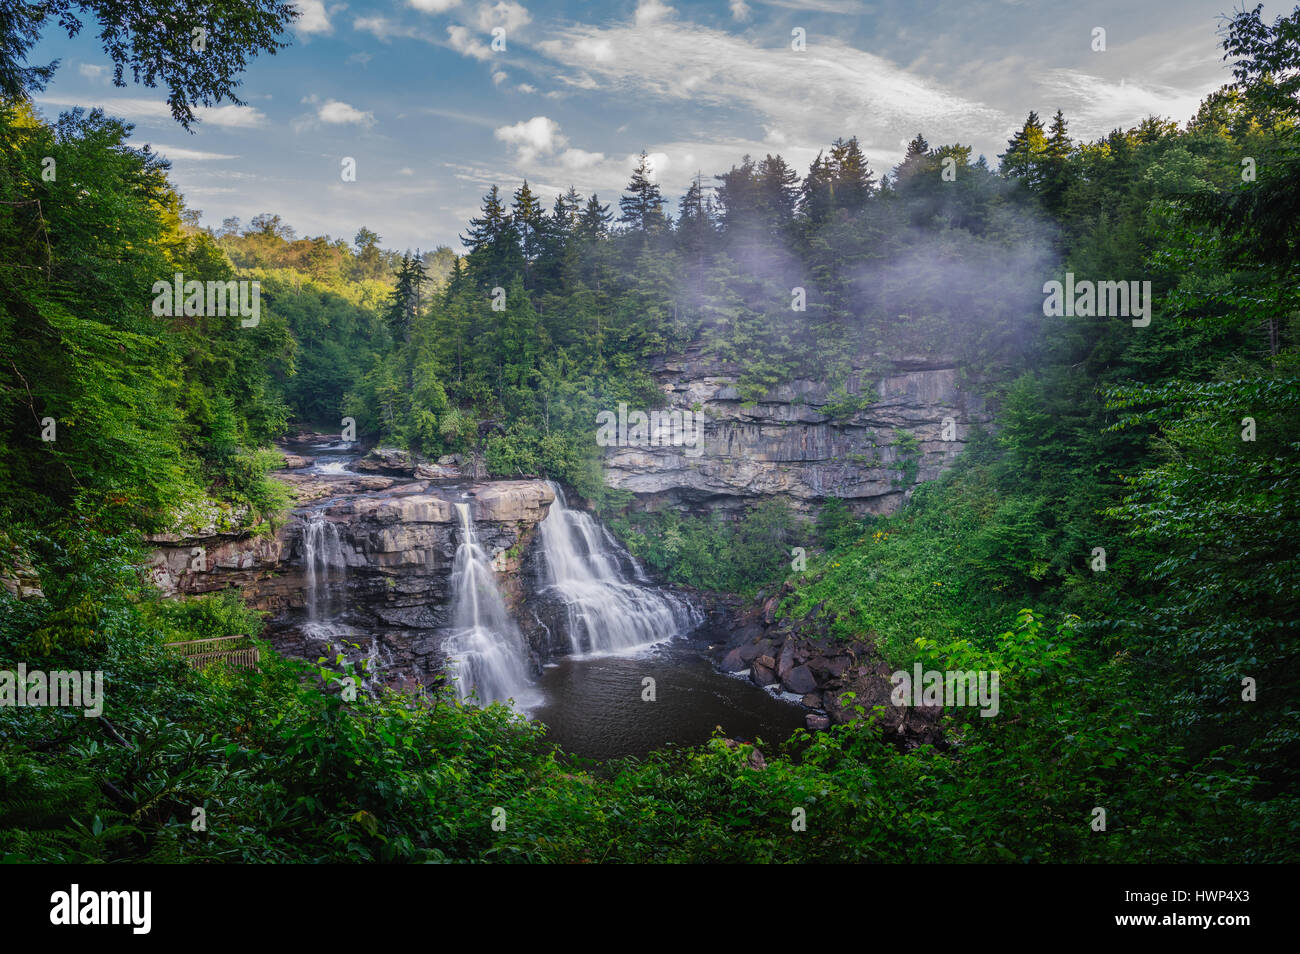 Small pockets of fog sweep in and out, hanging over the iconic Blackwater Falls of West Virginia on an early summer - Stock Image